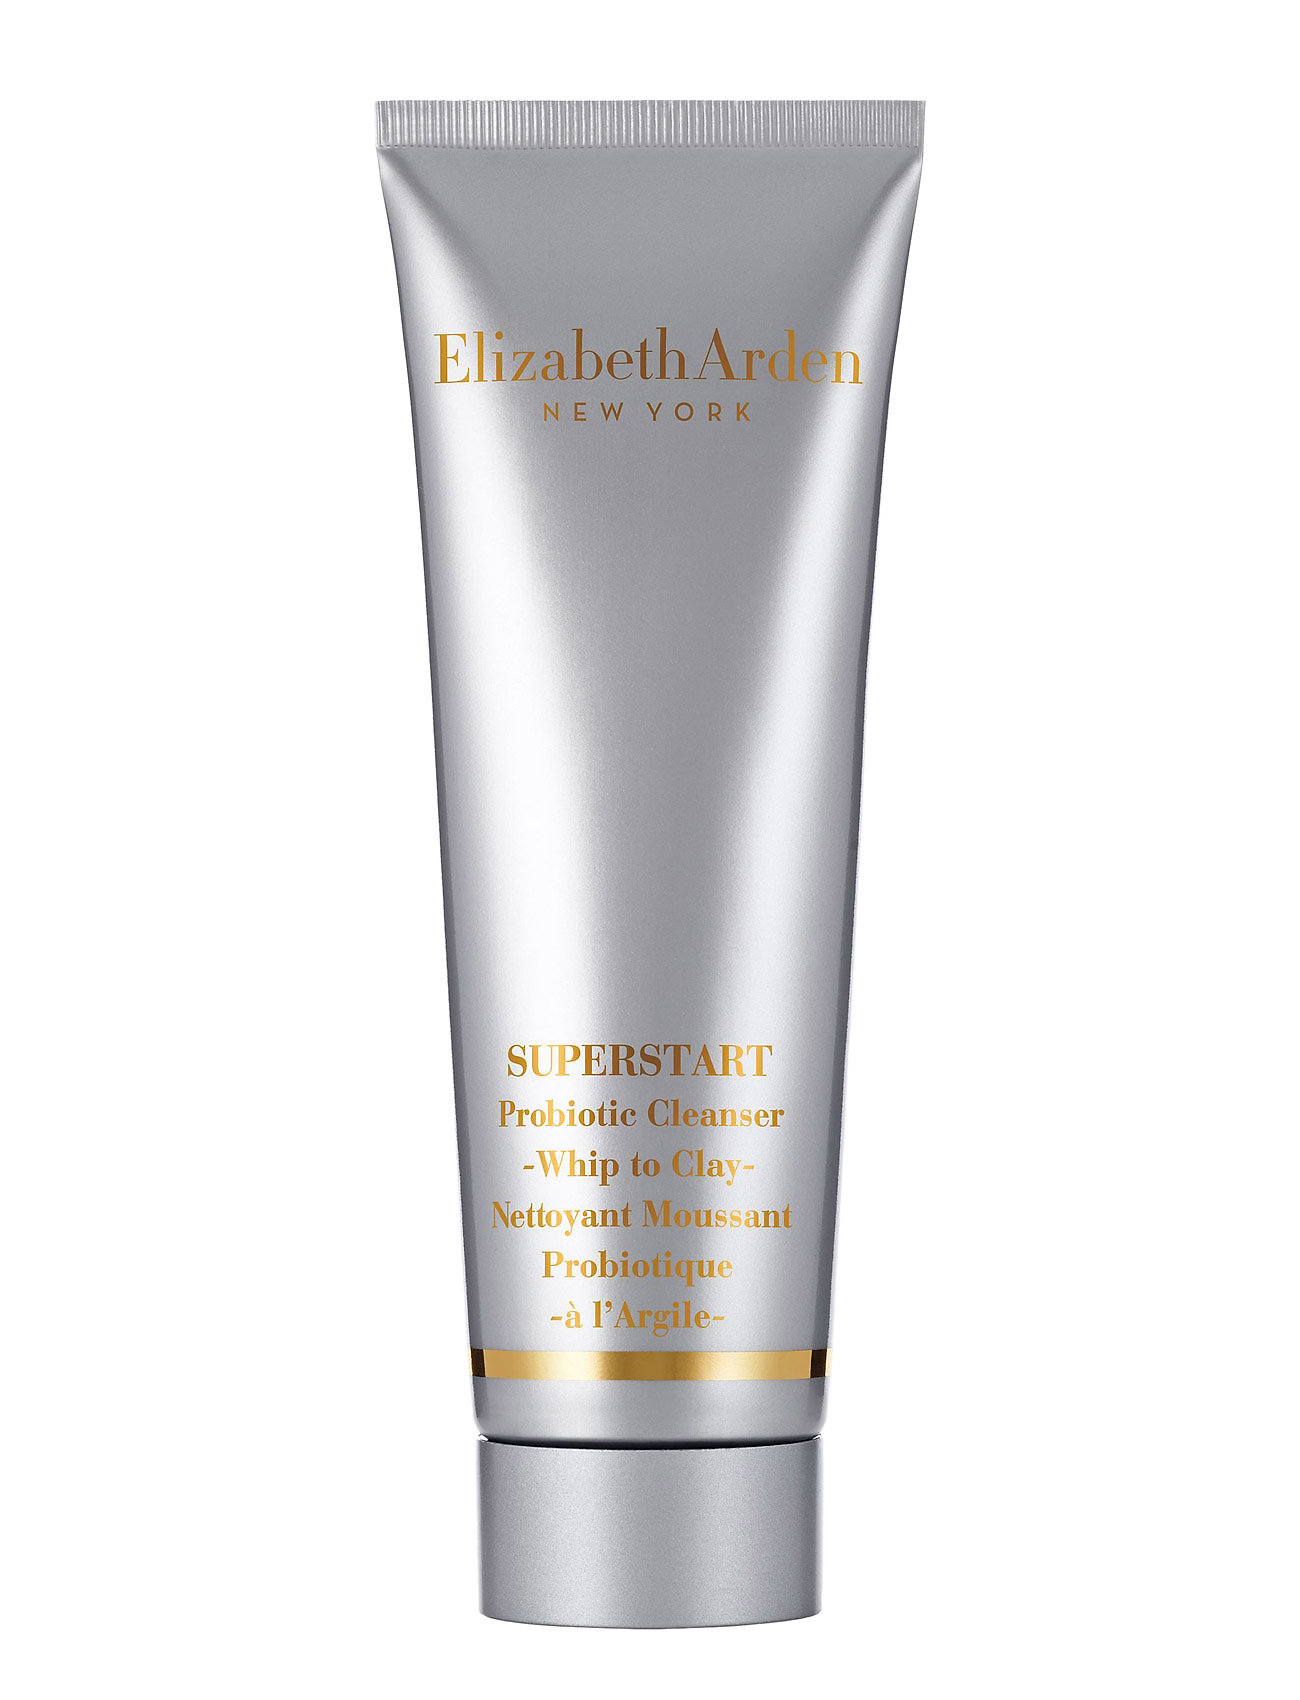 Image of Superstart Probiotic Cleanser Whip To Clay Ansigtsrens Makeupfjerner Nude Elizabeth Arden (3119380103)